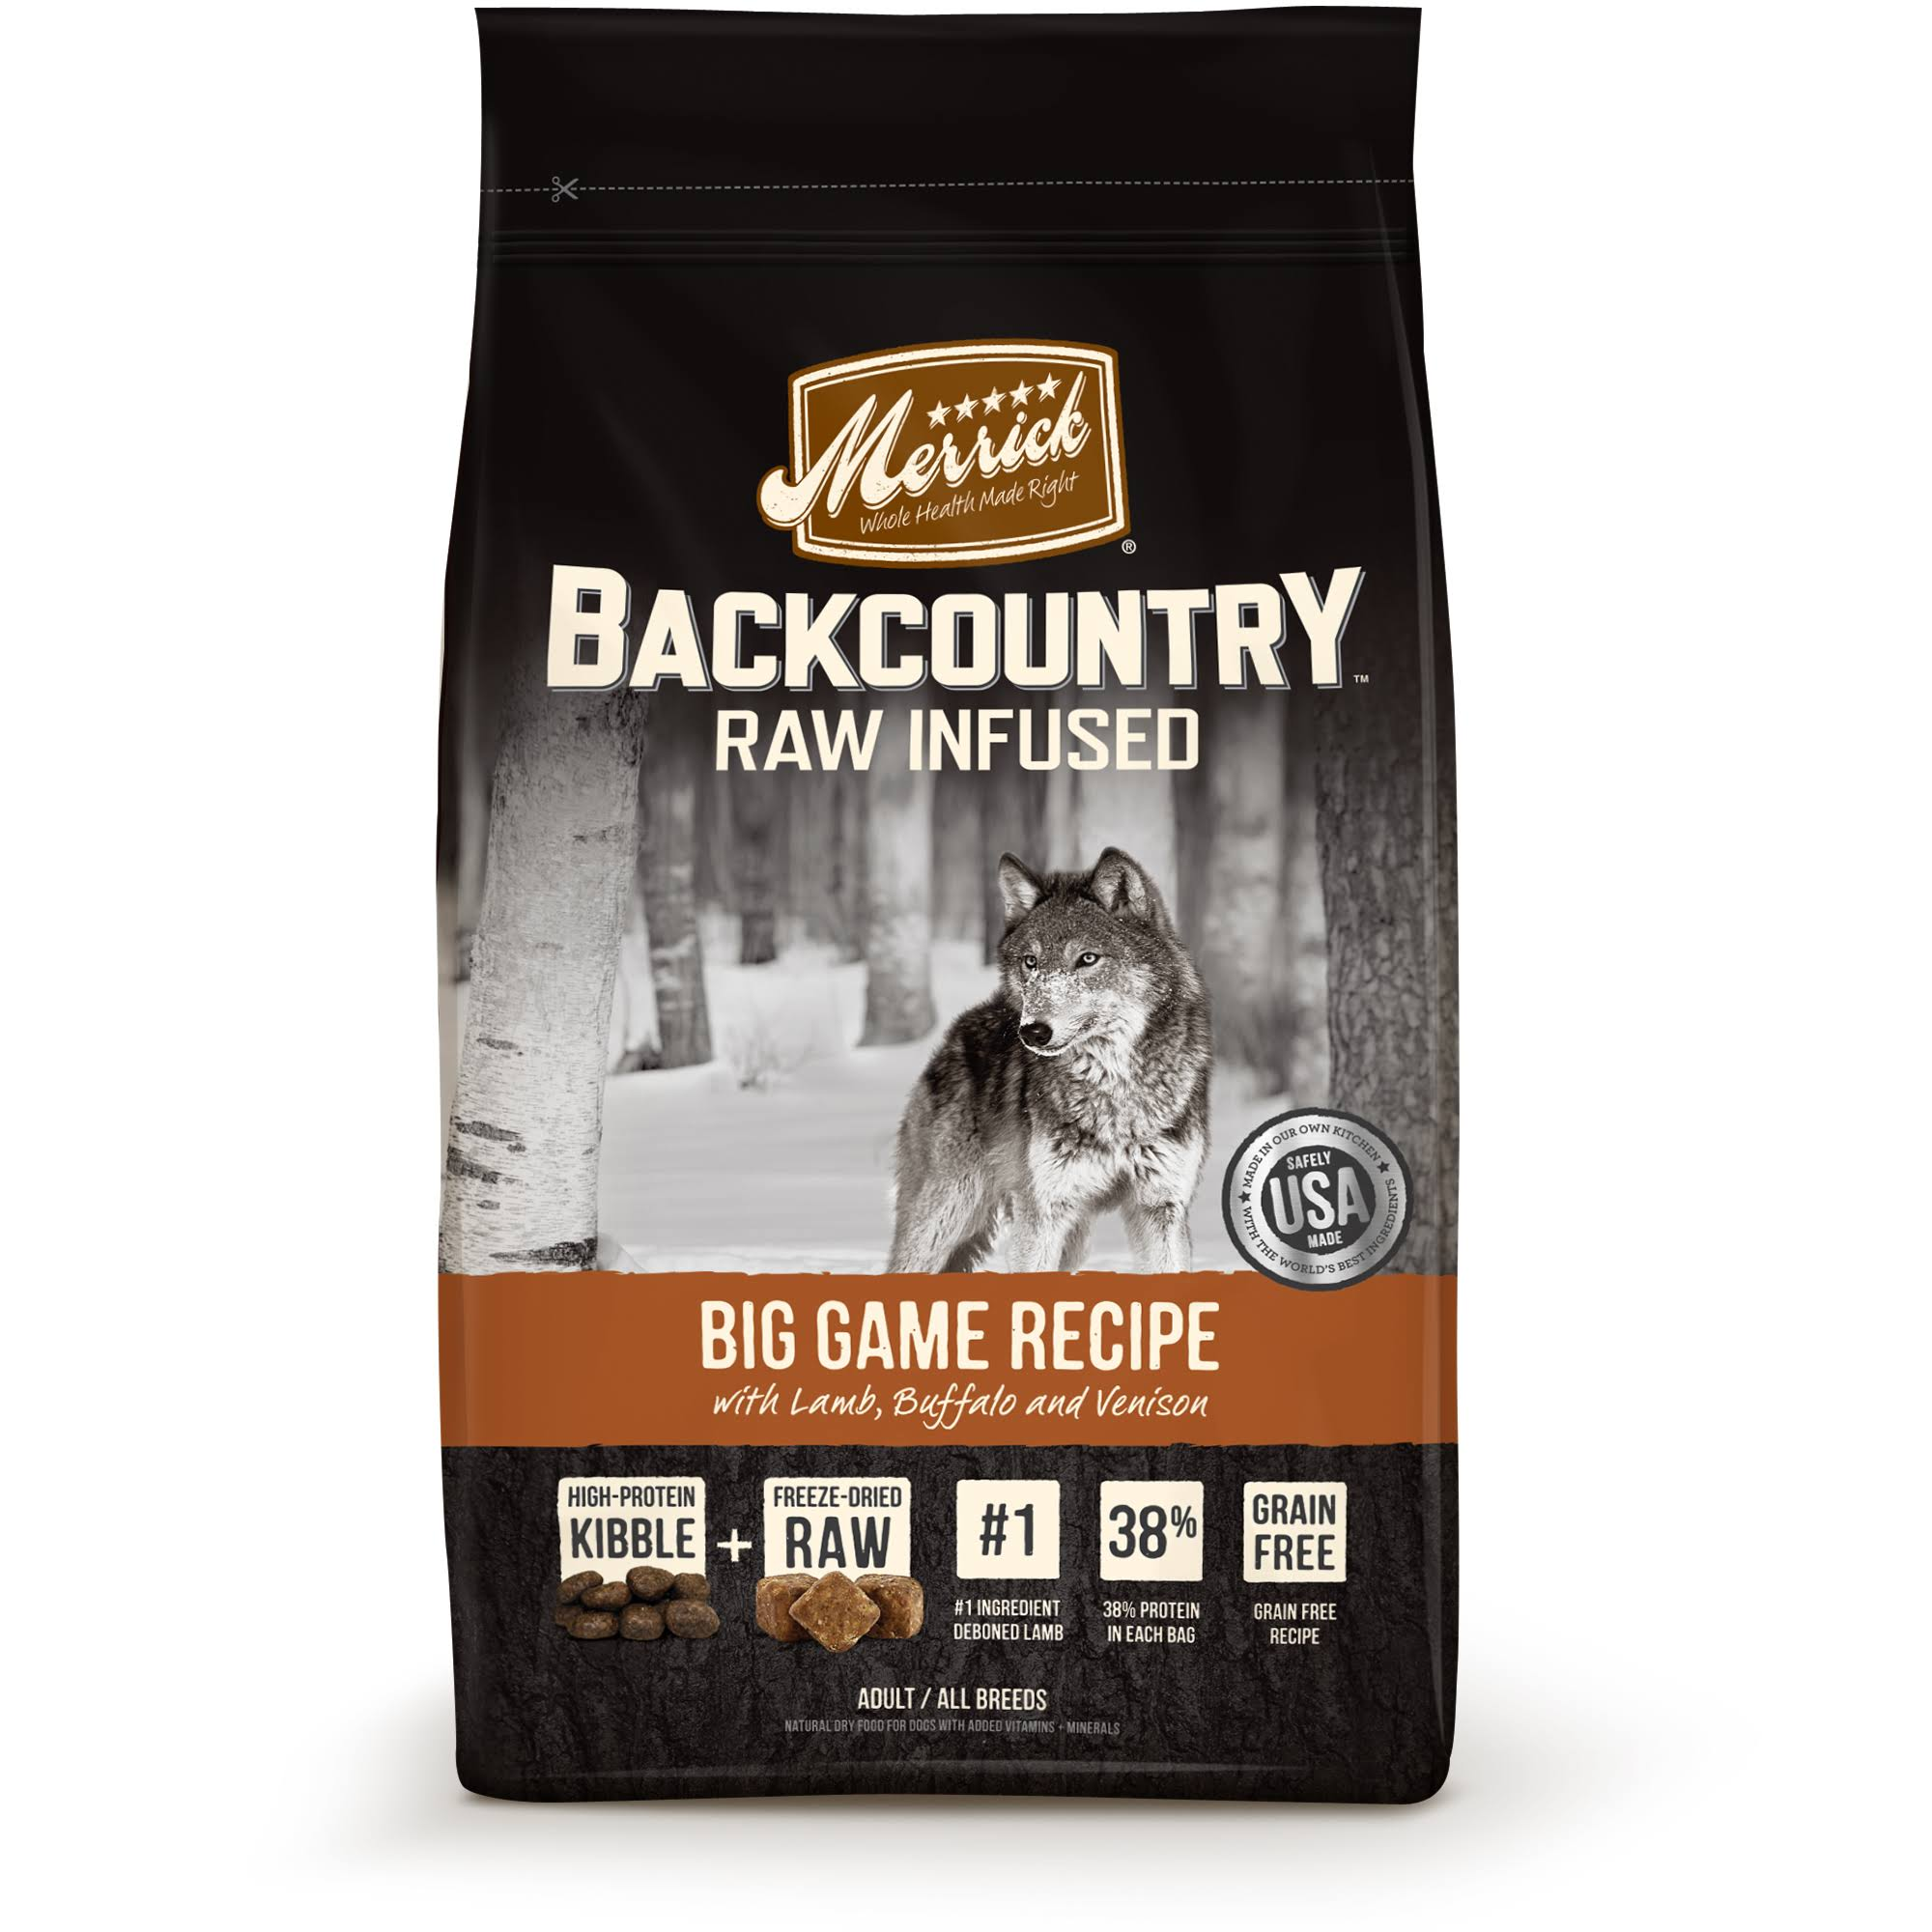 Merrick Backcountry Raw Infused Pet Food - Big Game Recipe, 22lbs